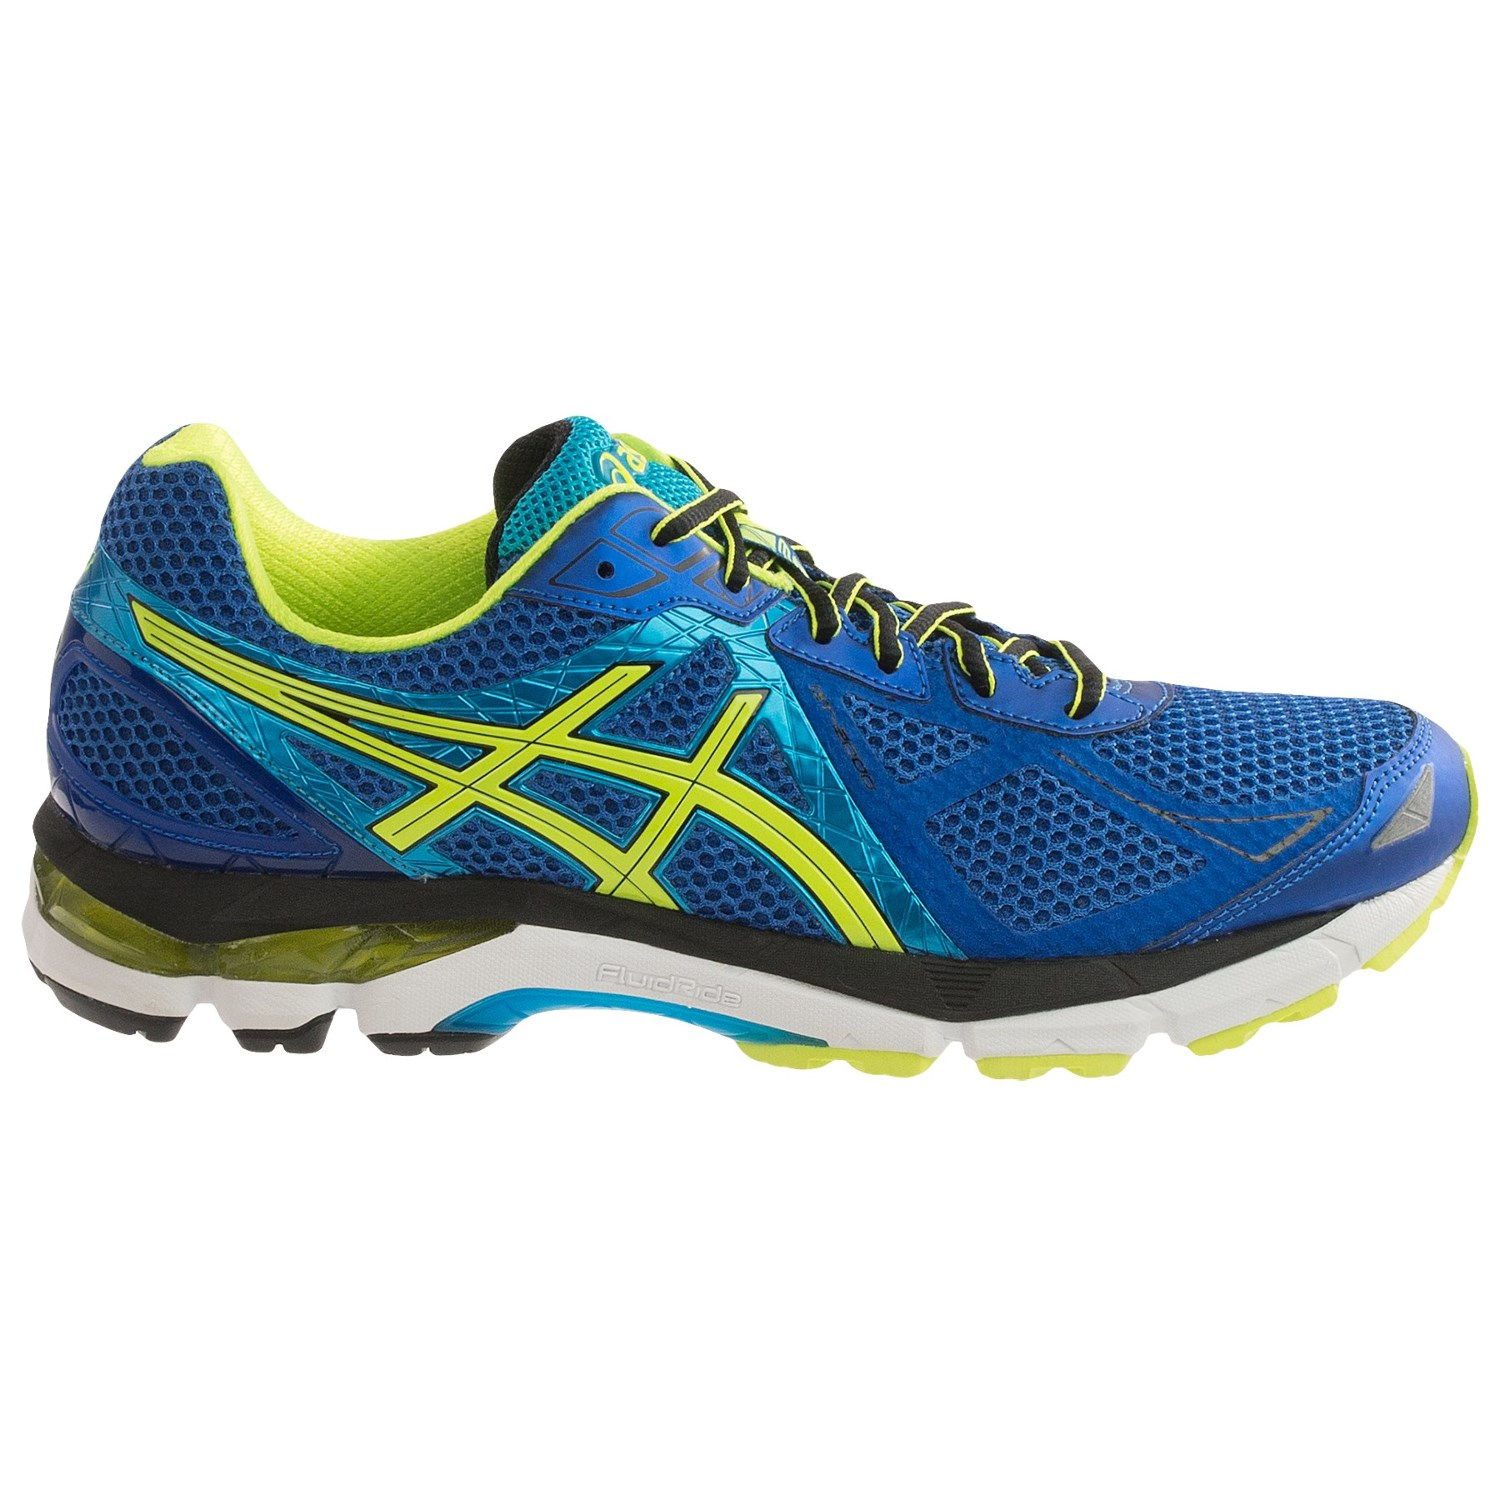 Compare Running Shoes Sizes